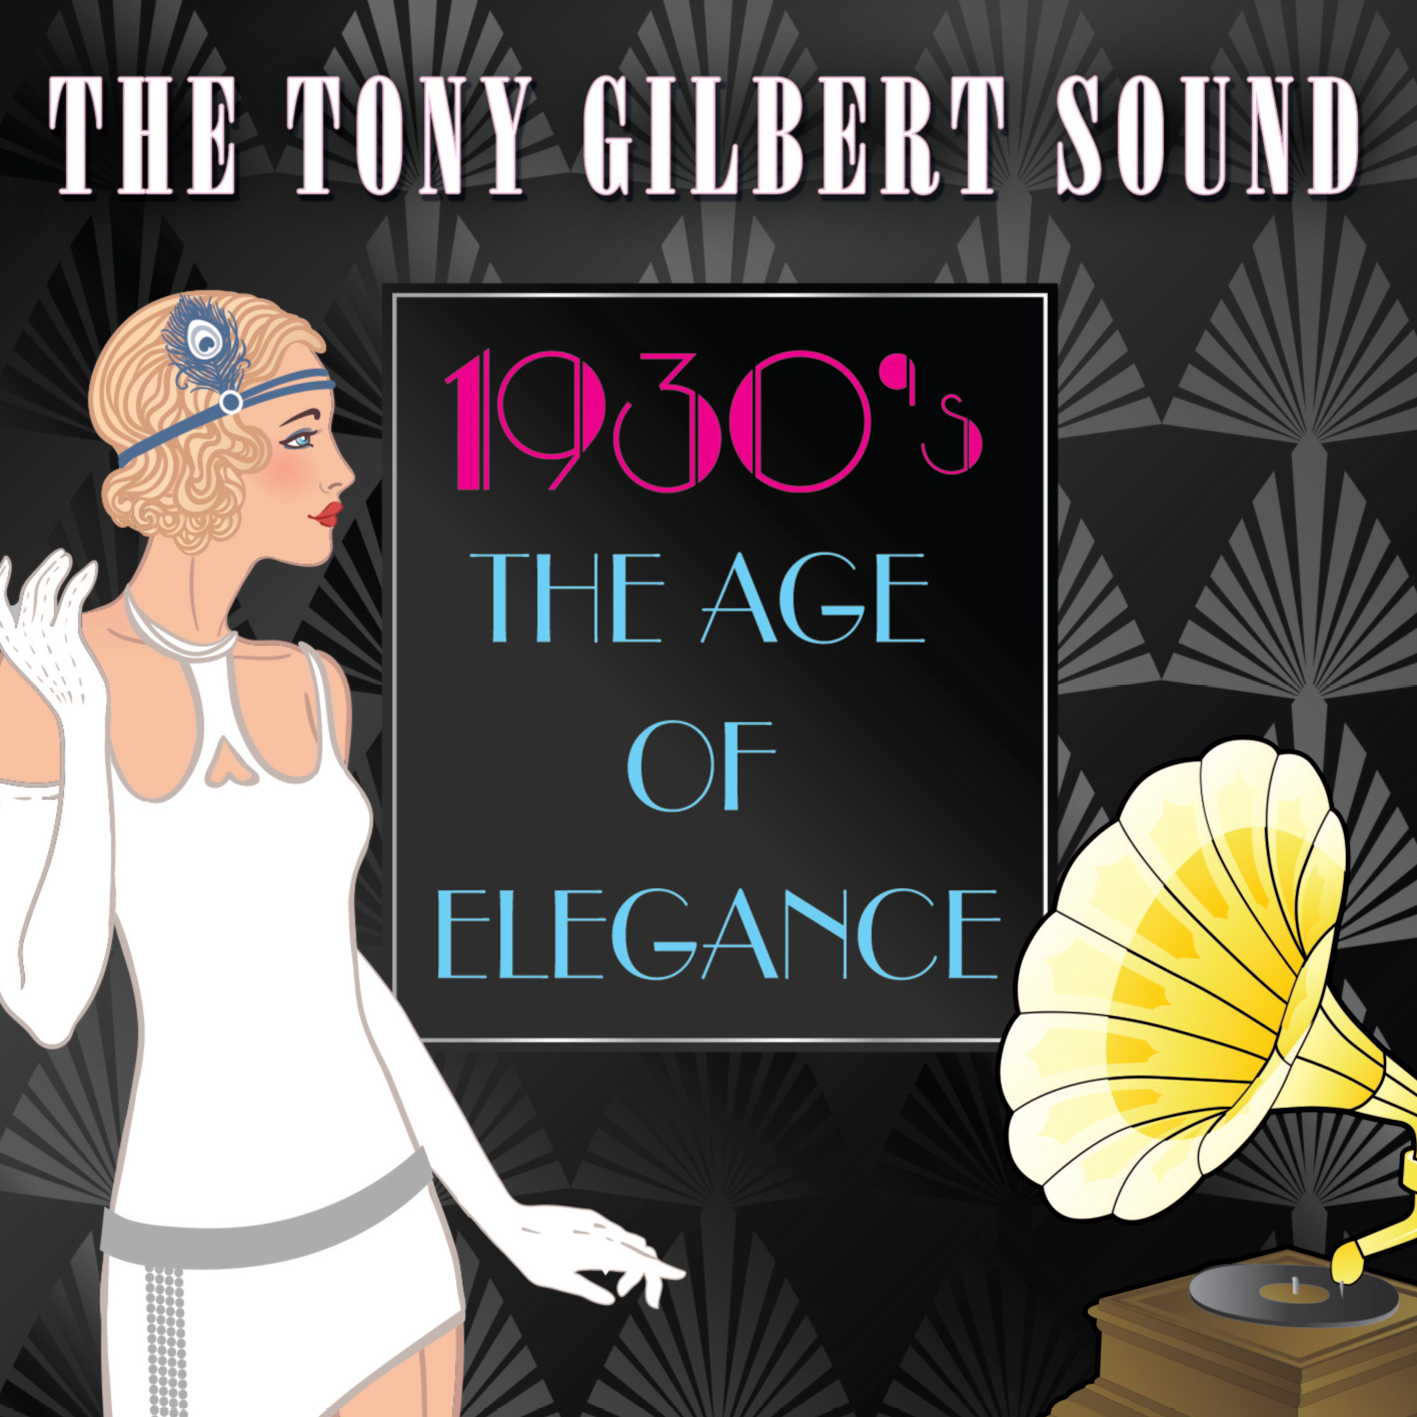 The Tony Gilbert Sound - 1930s The Age of Elegance